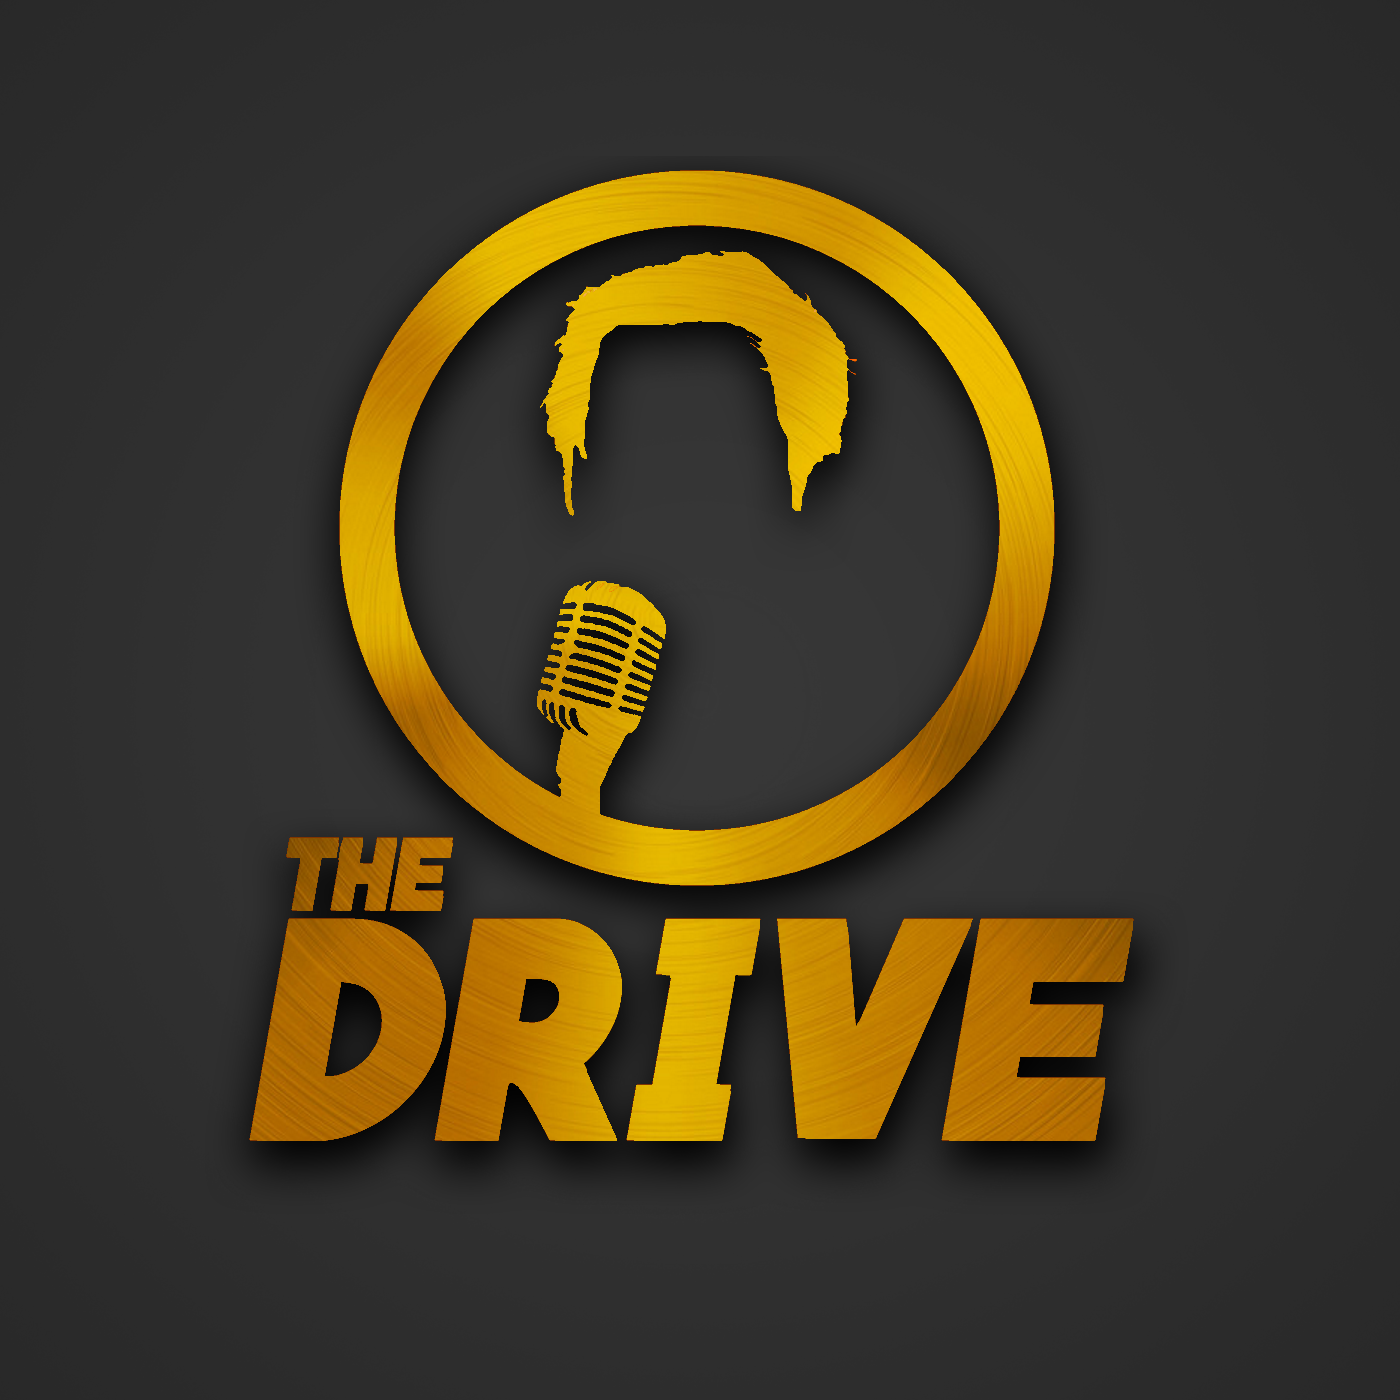 Listen to the The Drive On Fox Sports 910 Episode - Donovan McNabb - What are your thoughts on David Johnson? on iHeartRadio | iHeartRadio